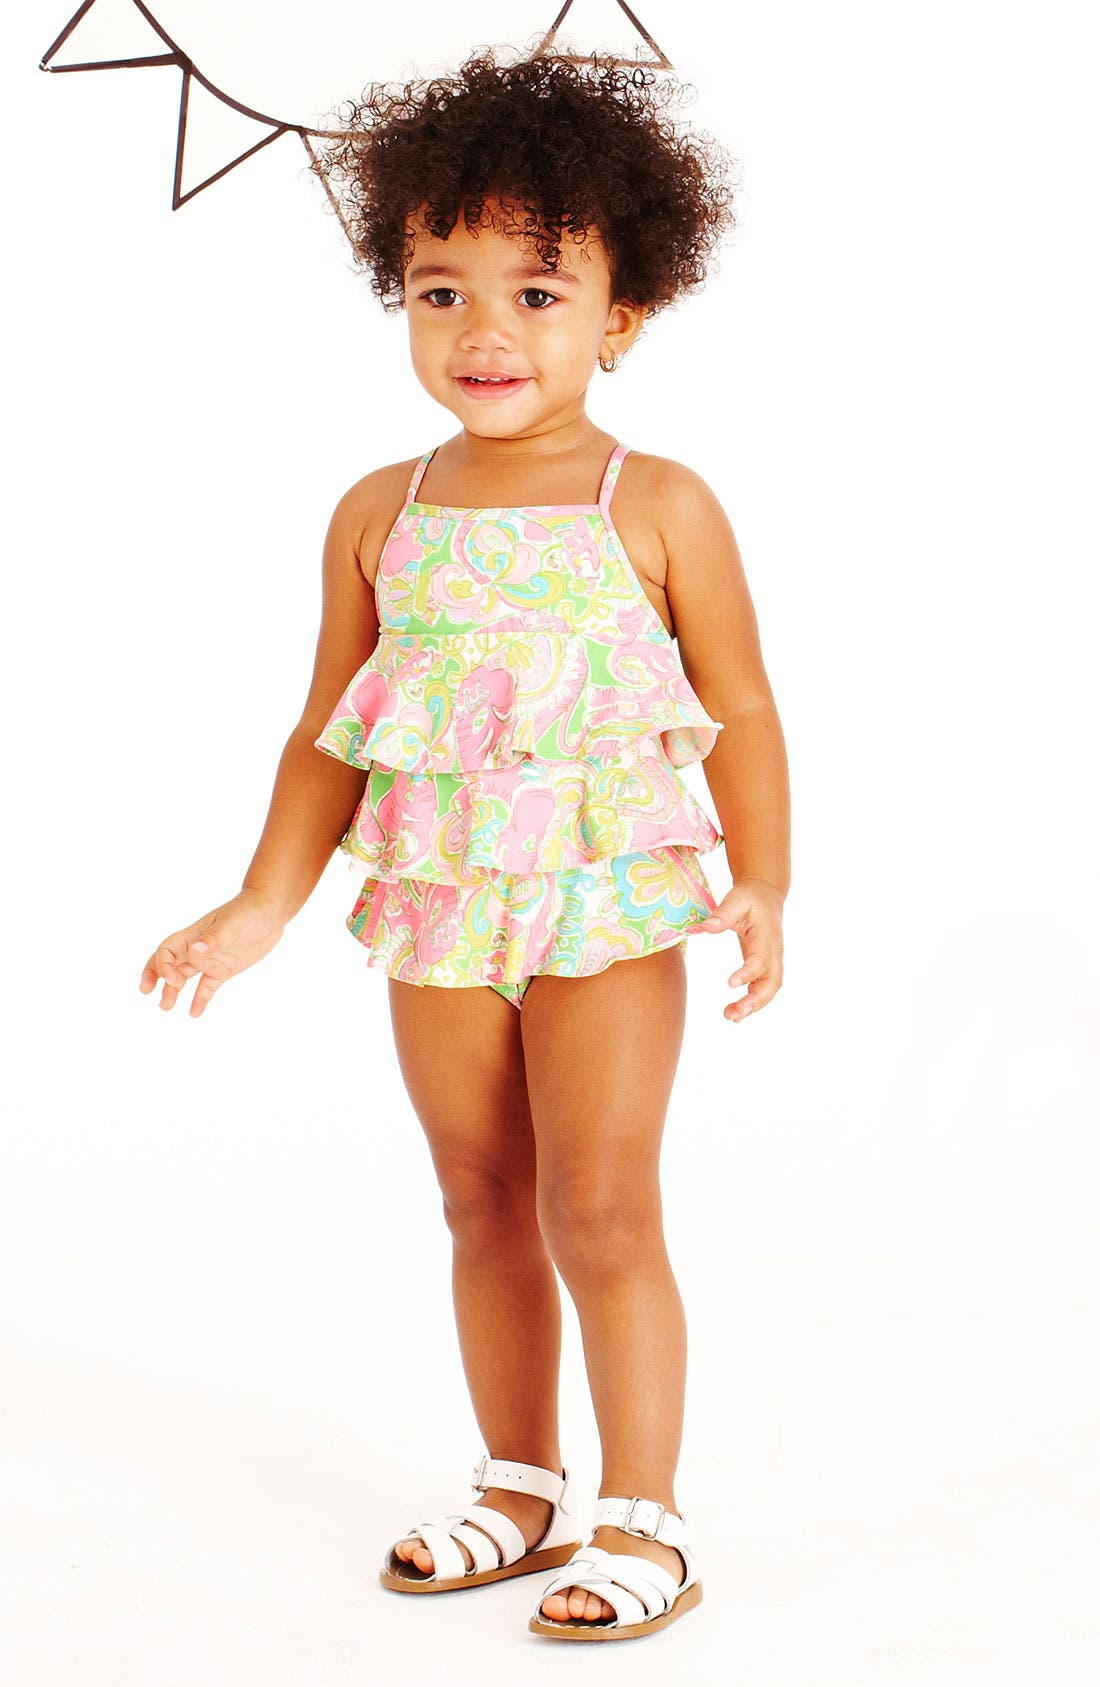 Main Image - Lilly Pulitzer® Swimsuit & Hoy Shoe Salt-Water® Sandals (Infant)